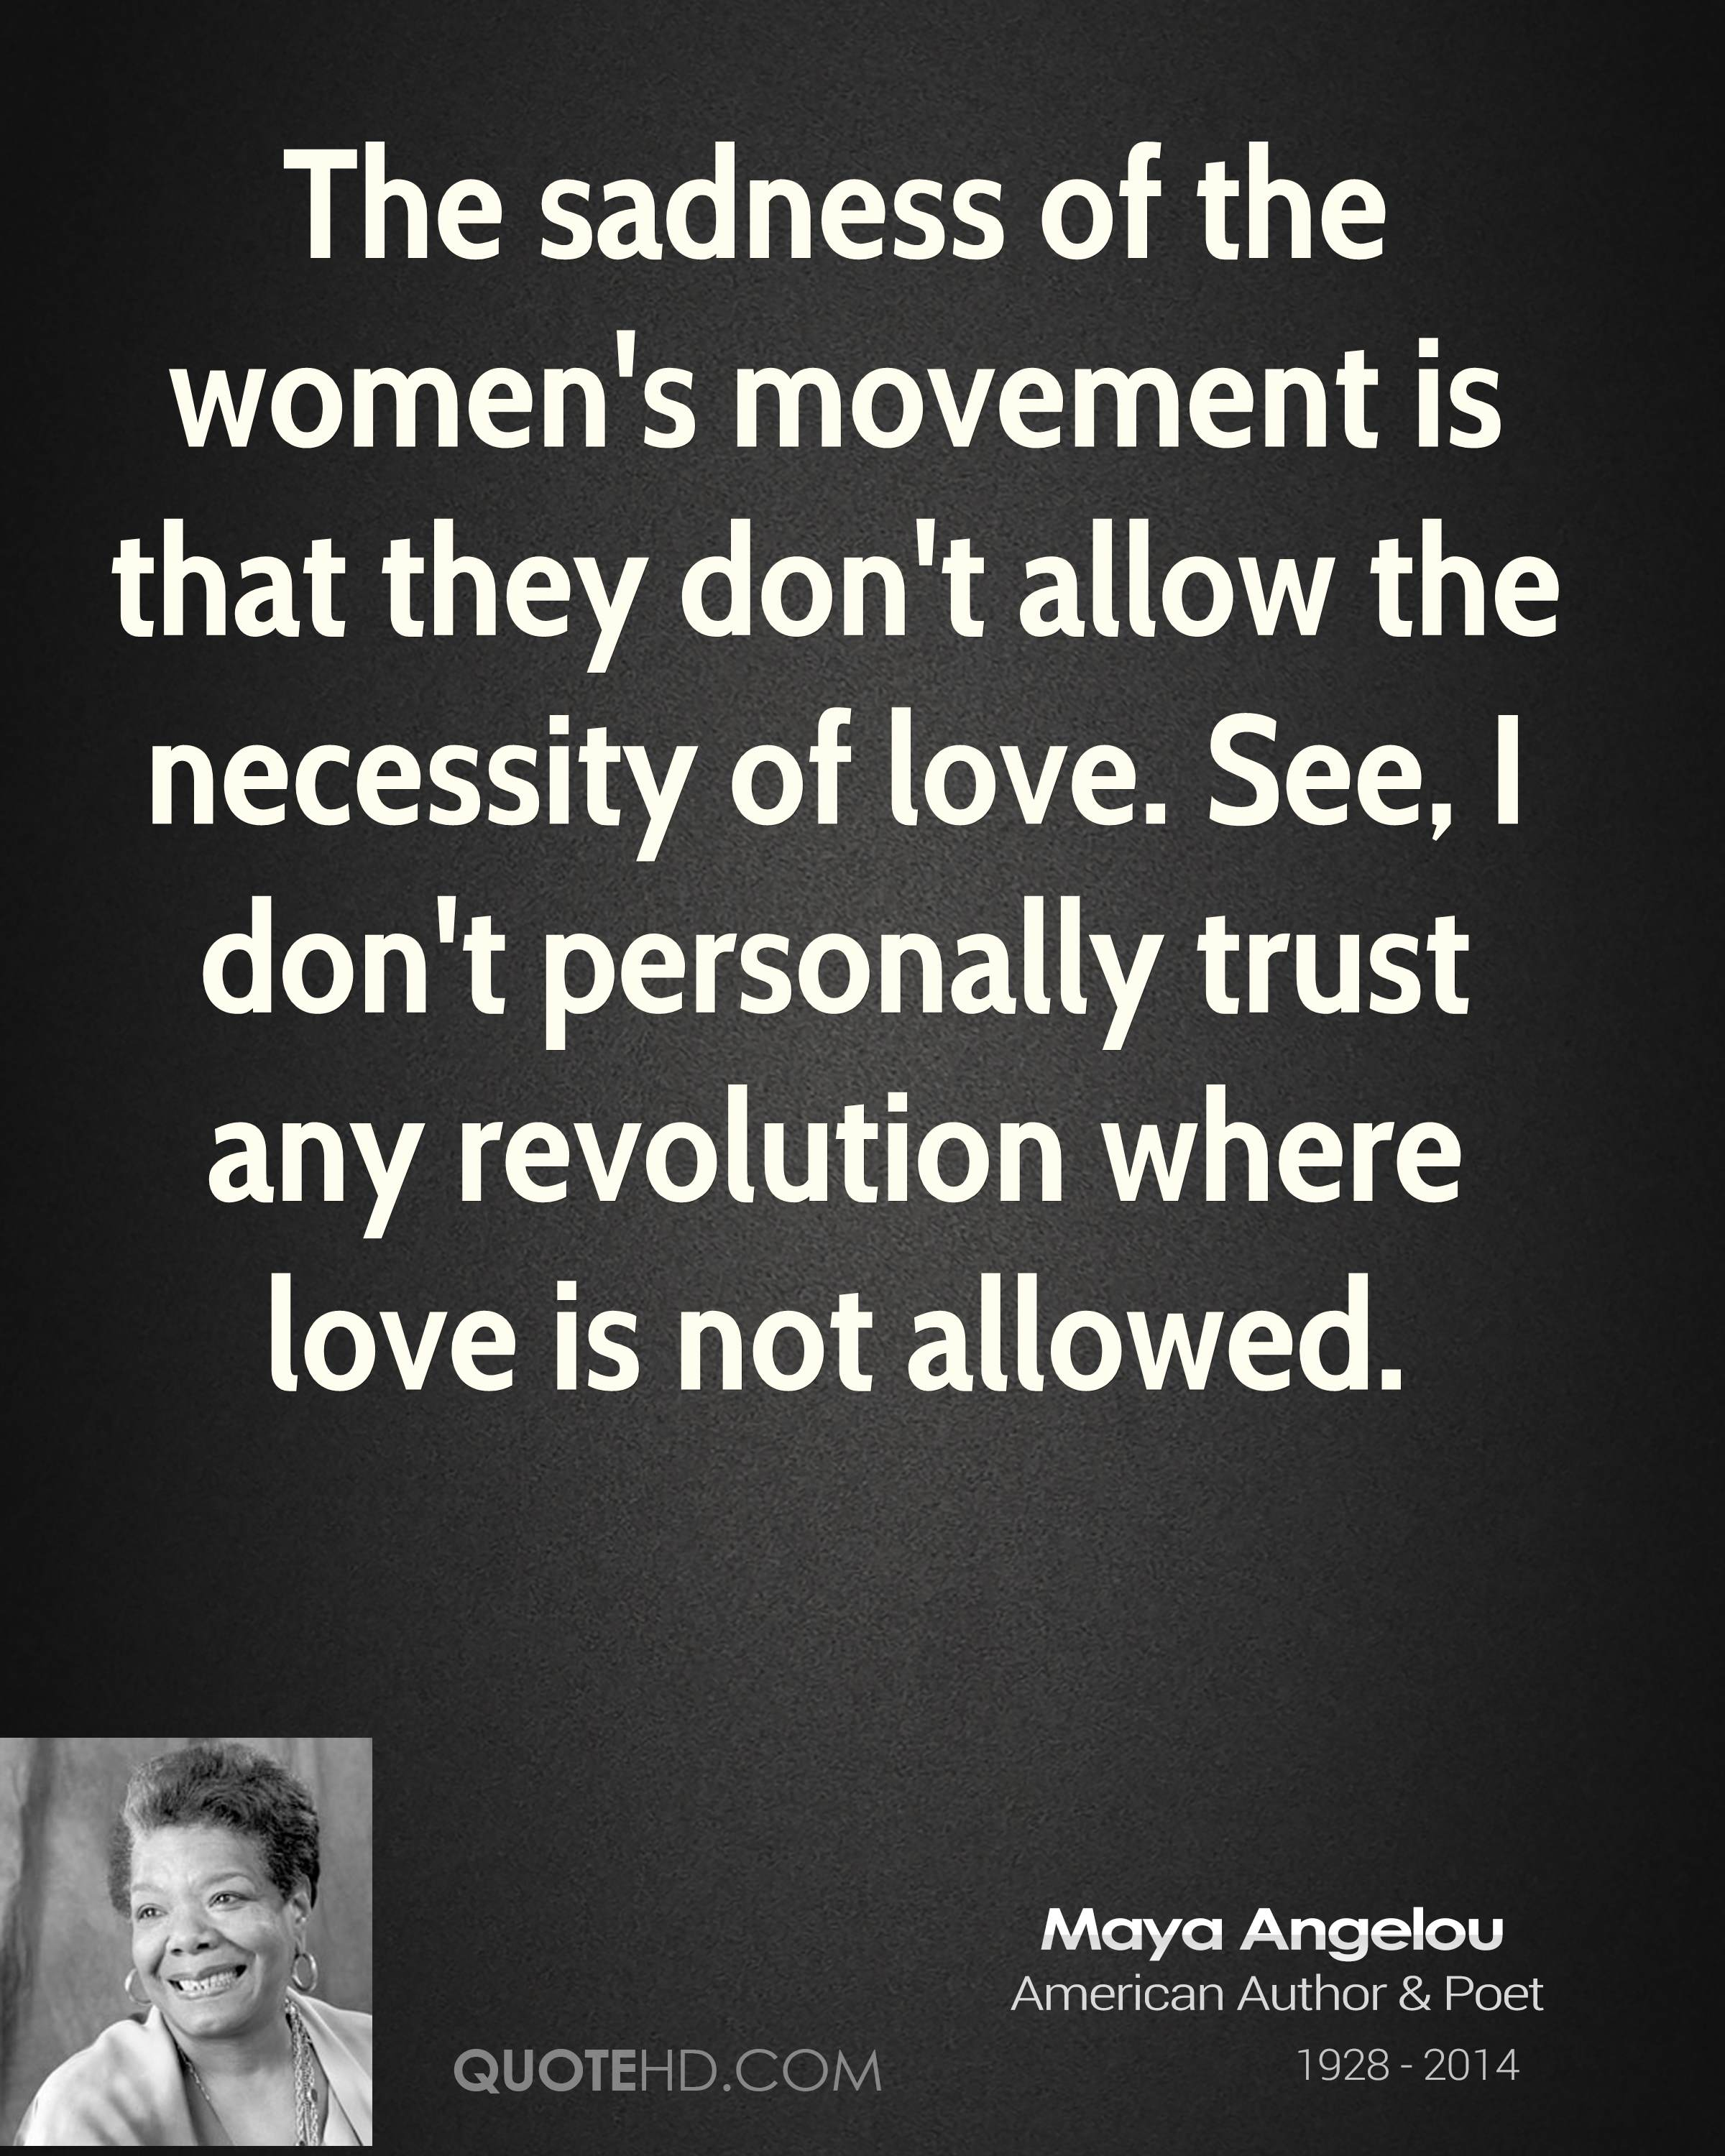 Movement Quotes Maya Angelou Women Quotes  Quotehd